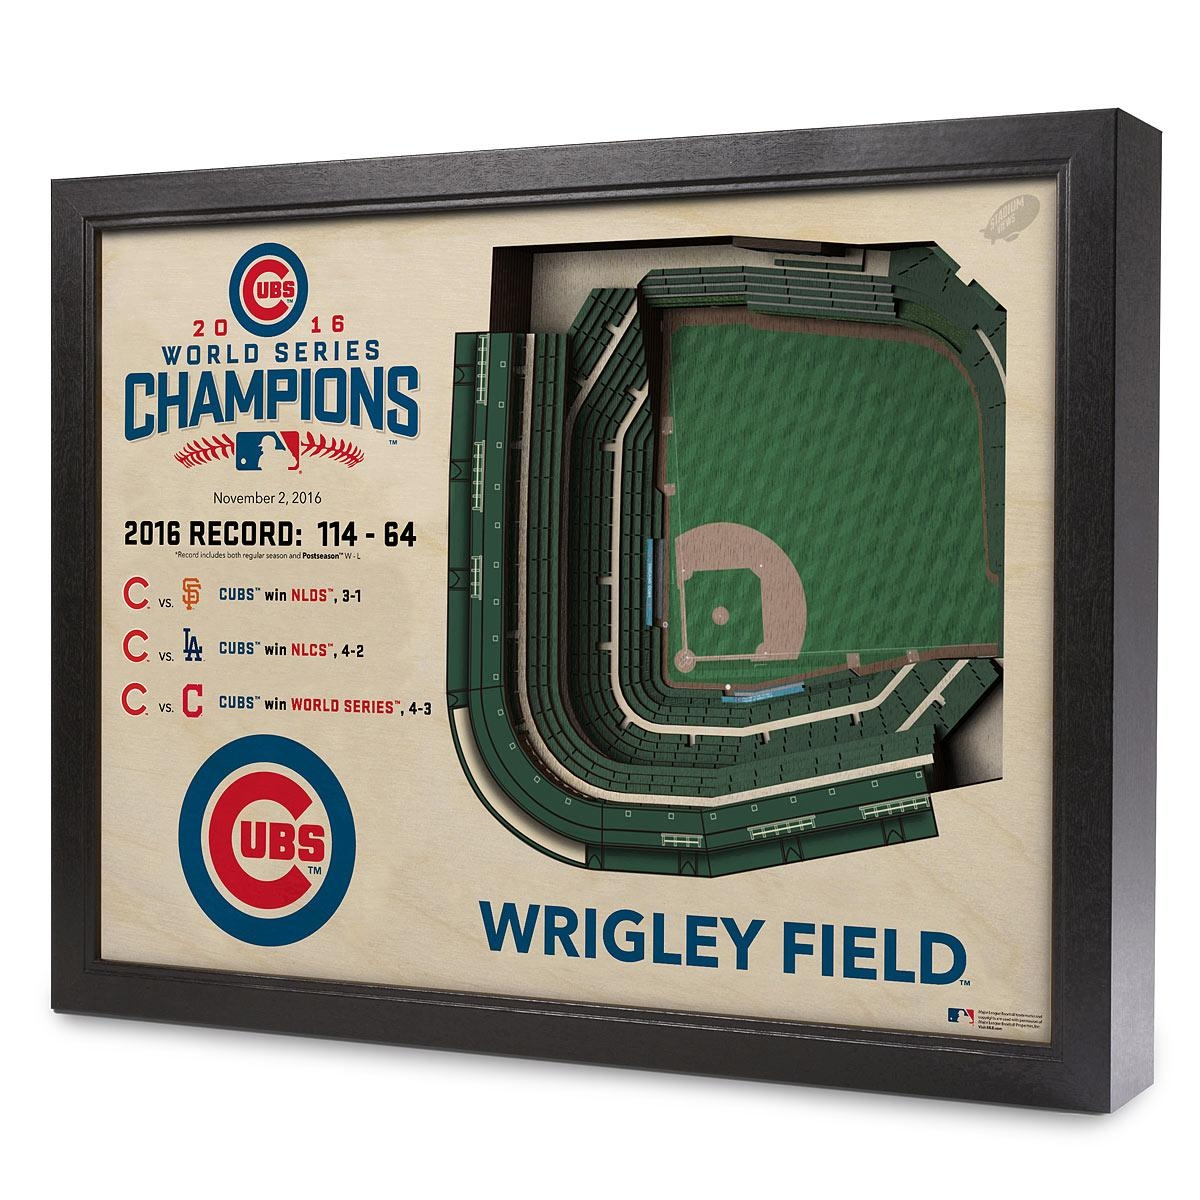 Baseball Stadium Art | Wrigley Field | Uncommongoods With Regard To Red Sox Wall Art (View 10 of 20)